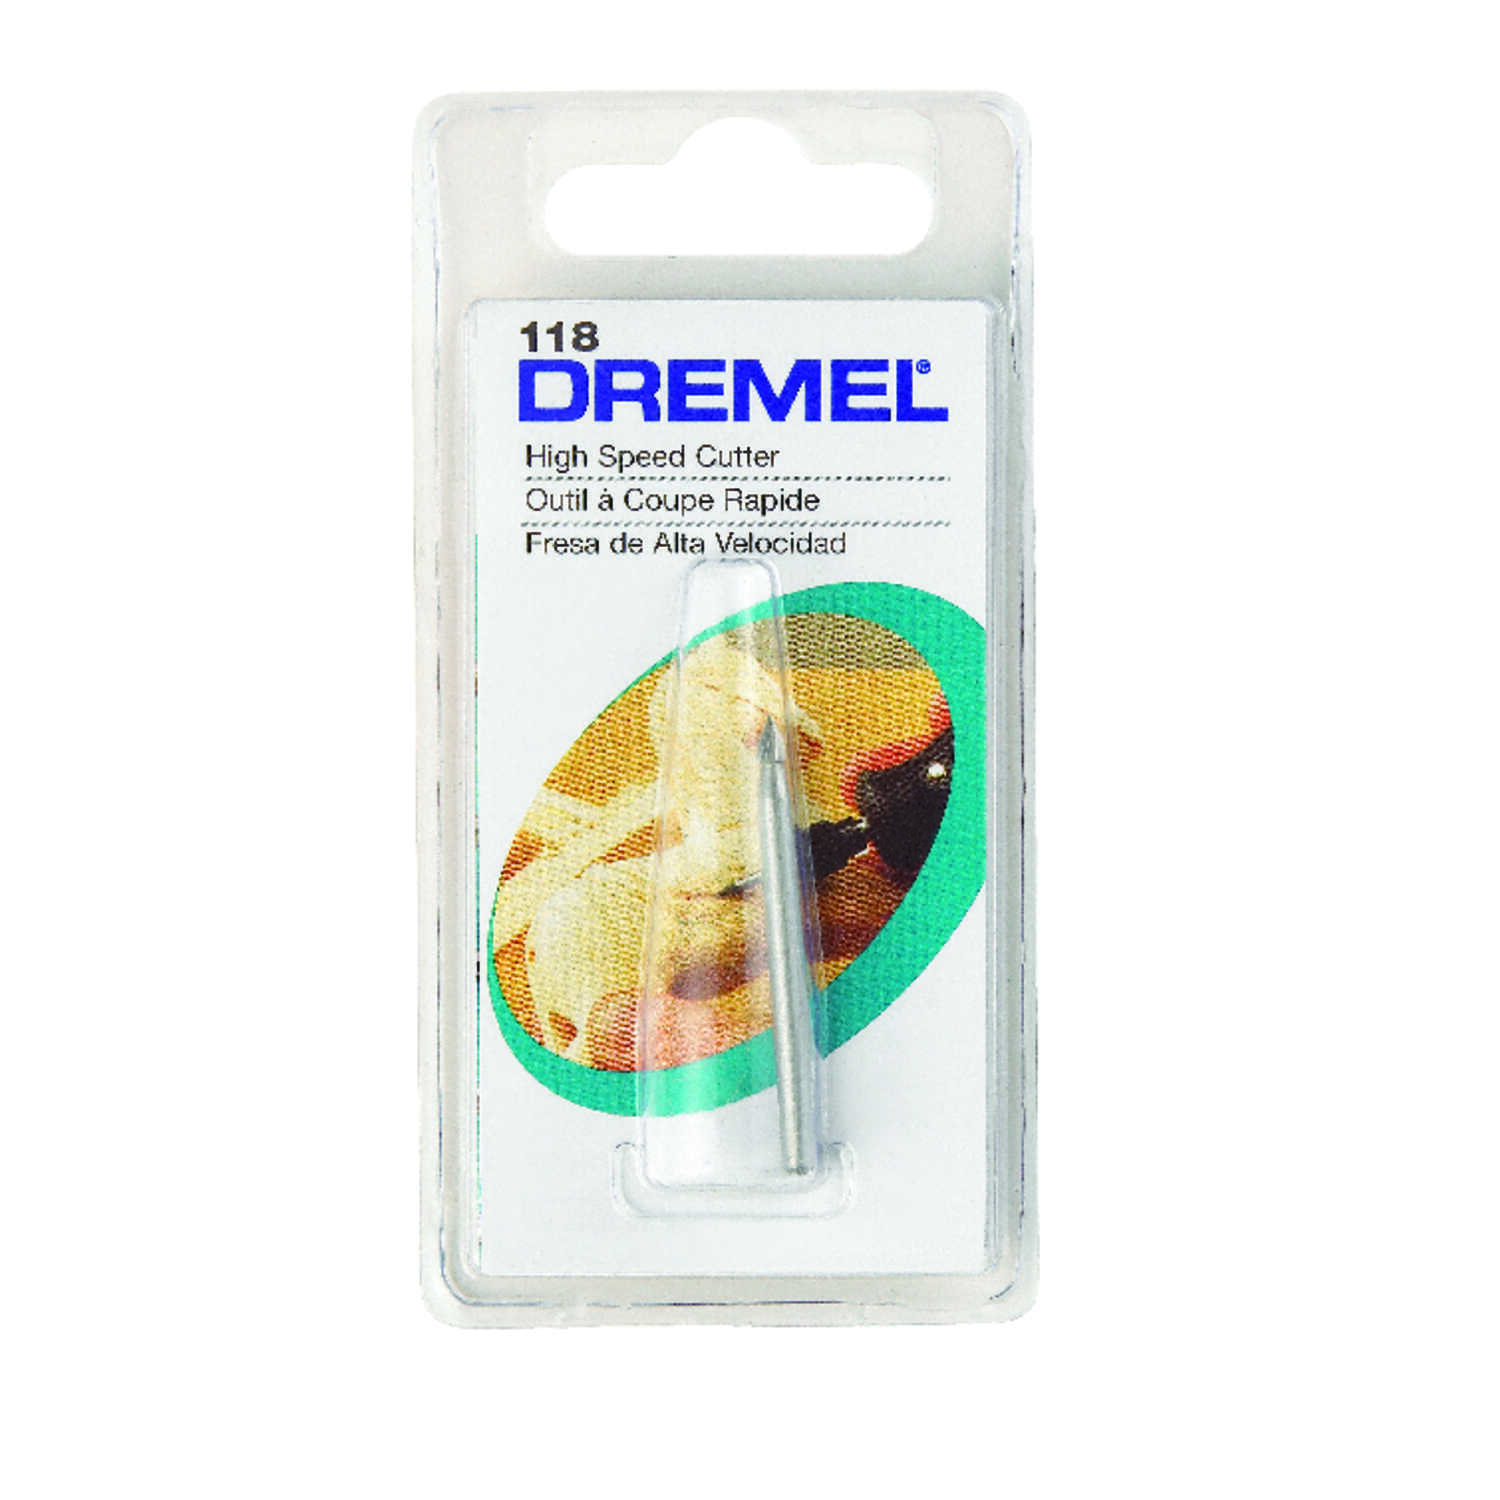 Dremel  1/8 in   x 1.5 in. L x 1/8 in. Dia. Steel  High Speed Cutter  1 pk